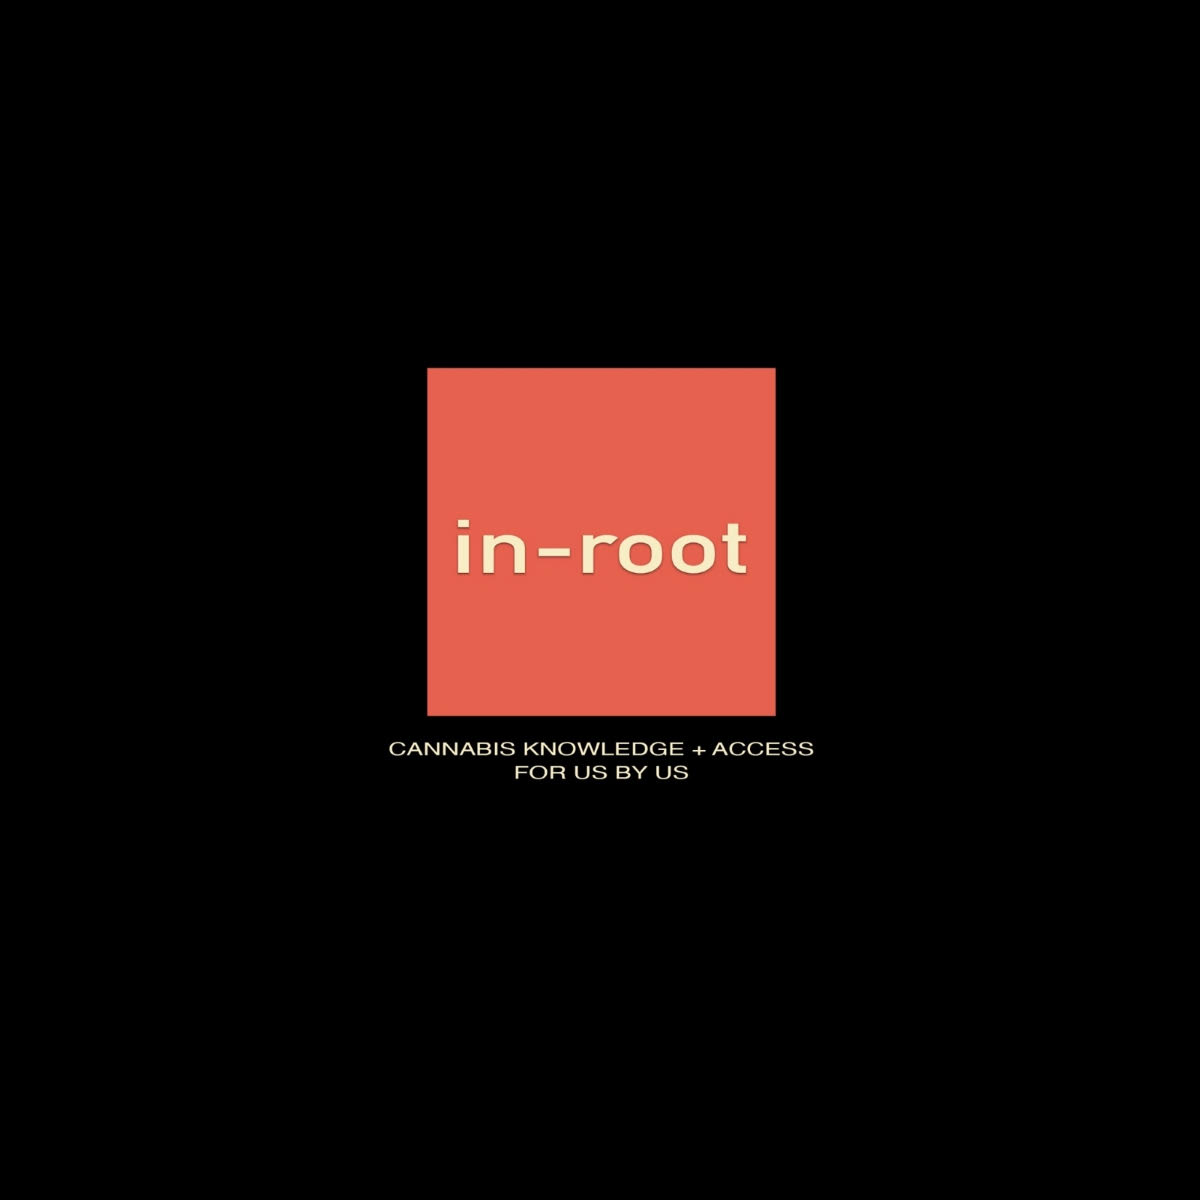 in - root: A Minority Education Series